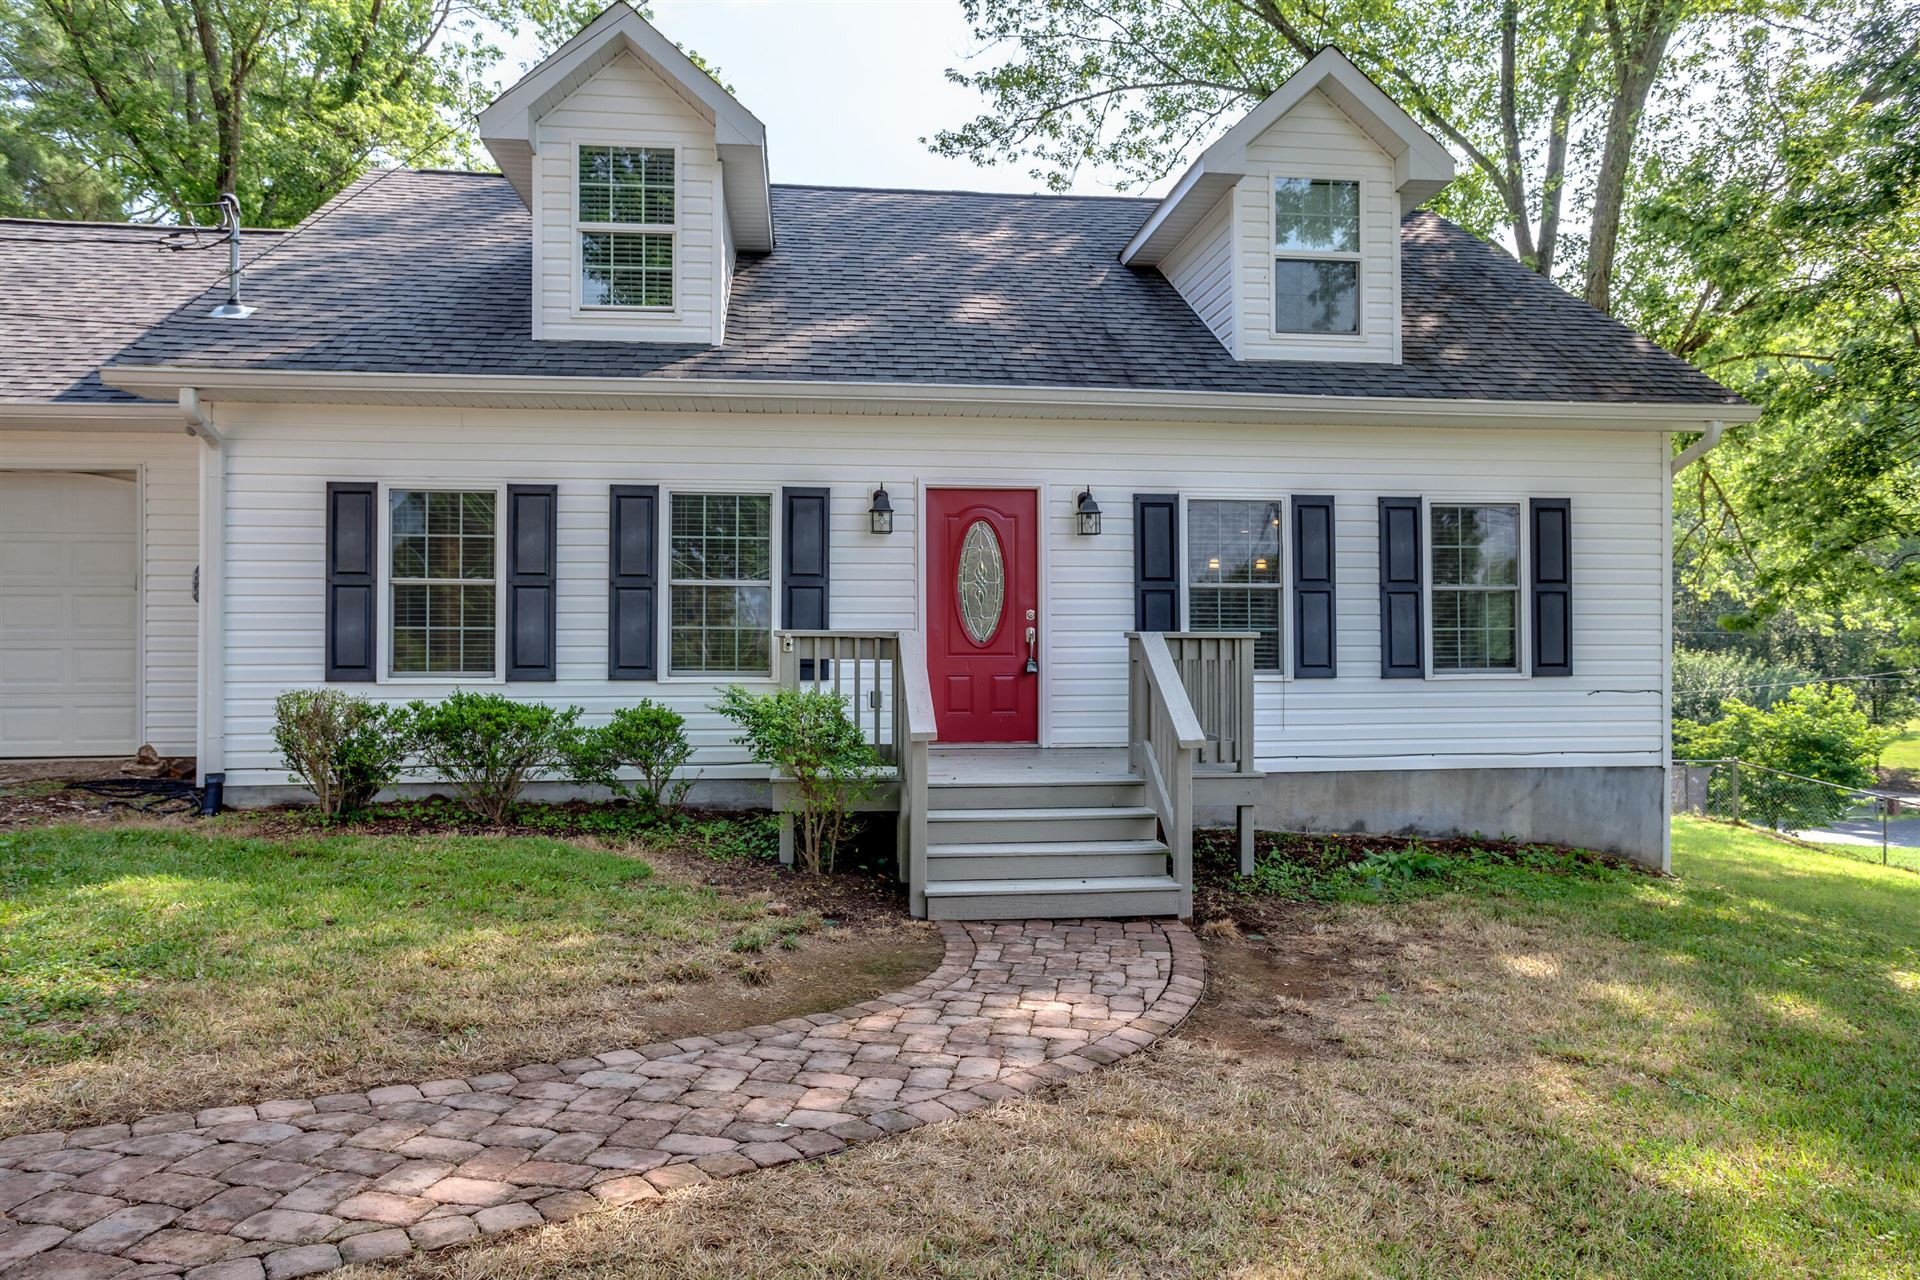 Photo of 108 Springhouse Rd, Powell, TN 37849 (MLS # 1156928)